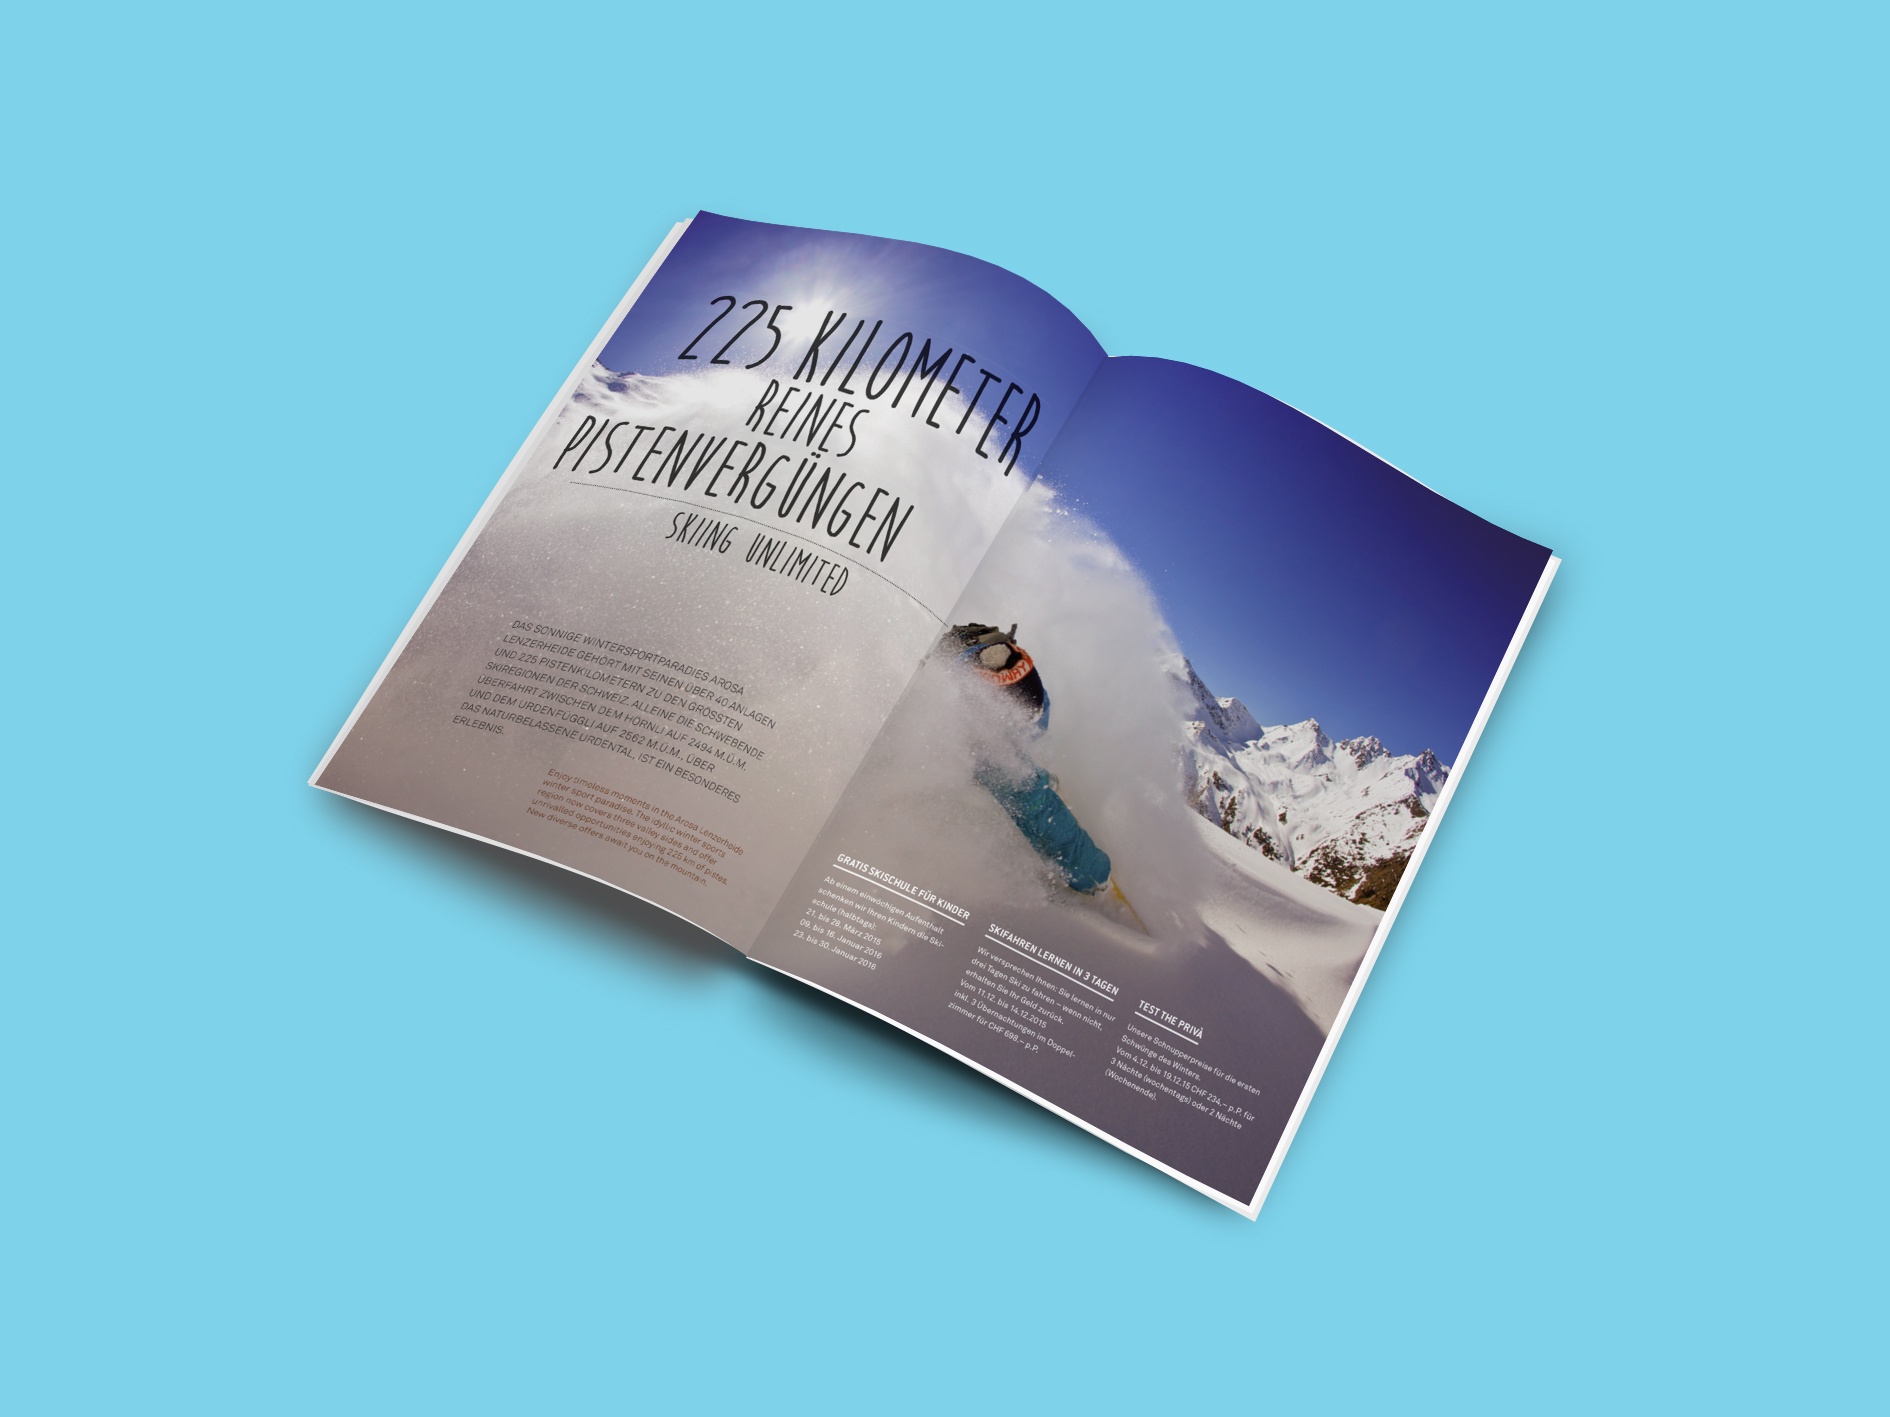 PRIVA Alpine Lodge, Lenzerheide, Editorial Design, Grafik Bern, Grafiker Bern